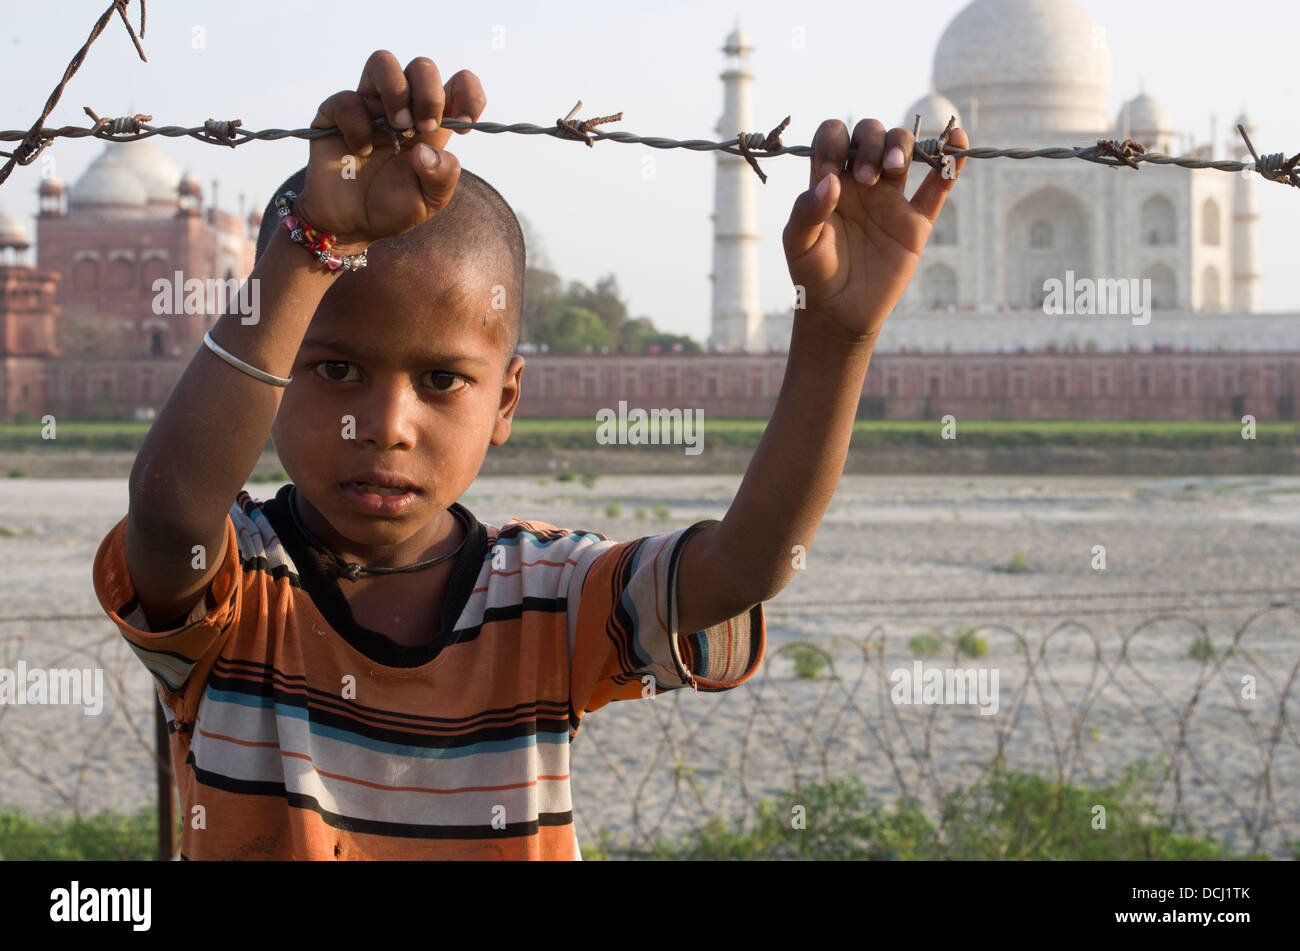 Boy, Barbed Wire, Taj Mahal White Marble Mausoleum - Agra, India a UNESCO World Heritage Site - Stock Image